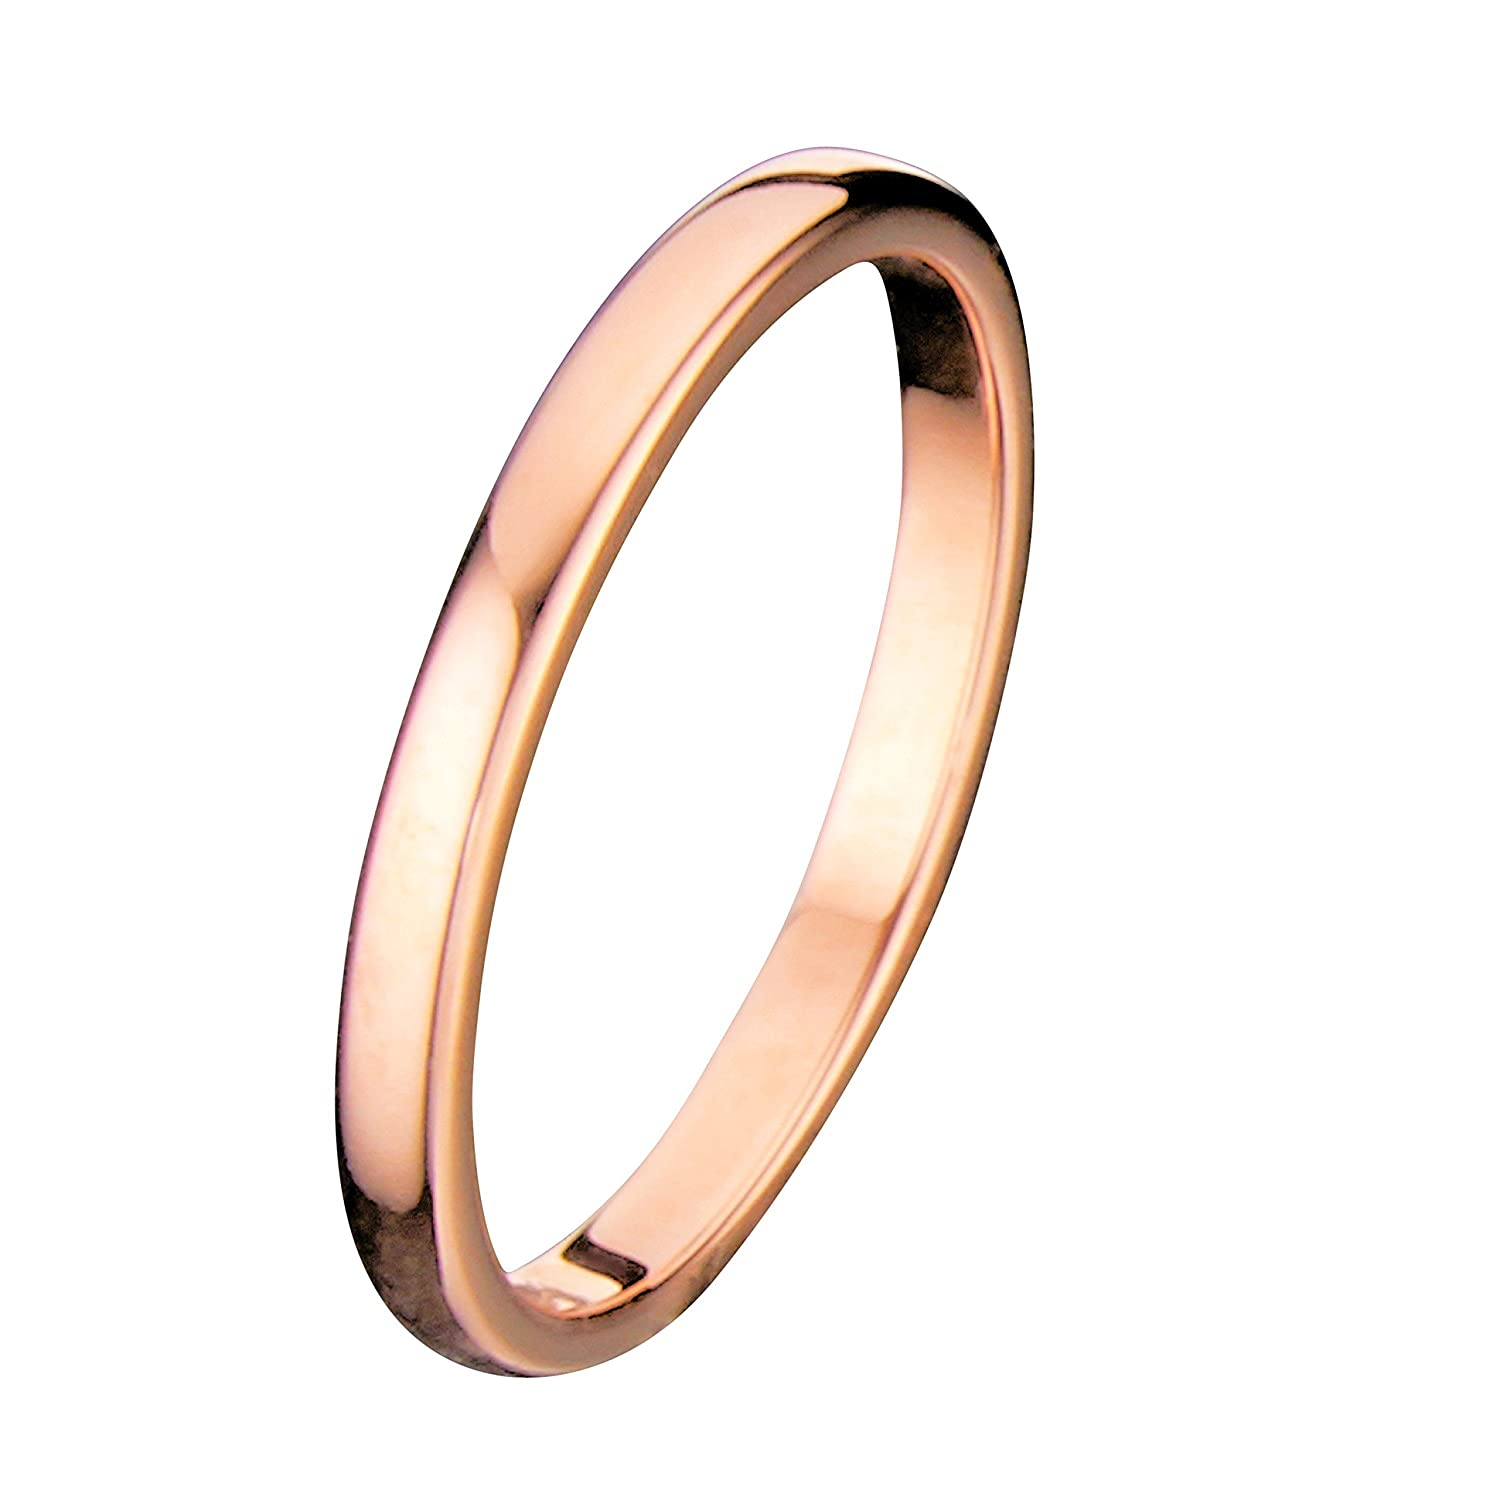 2mm thin rose gold plated ring tungsten carbide wedding band